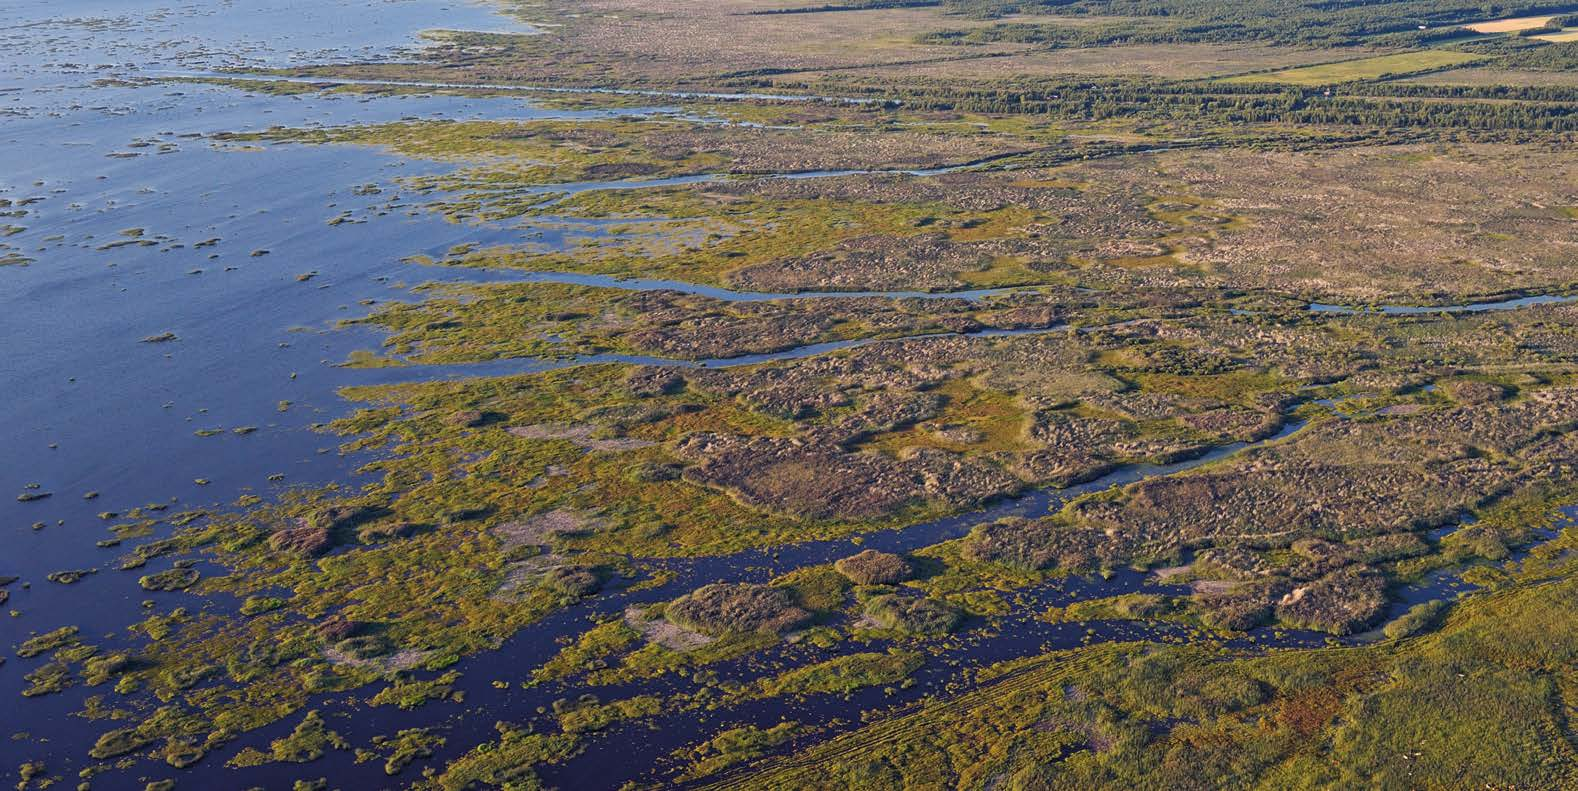 LIMINKA BAY Liminka Bay is famous for its birds. Witness extraordinary spring and autumn migrations in the finest wetland habitat in Finland.